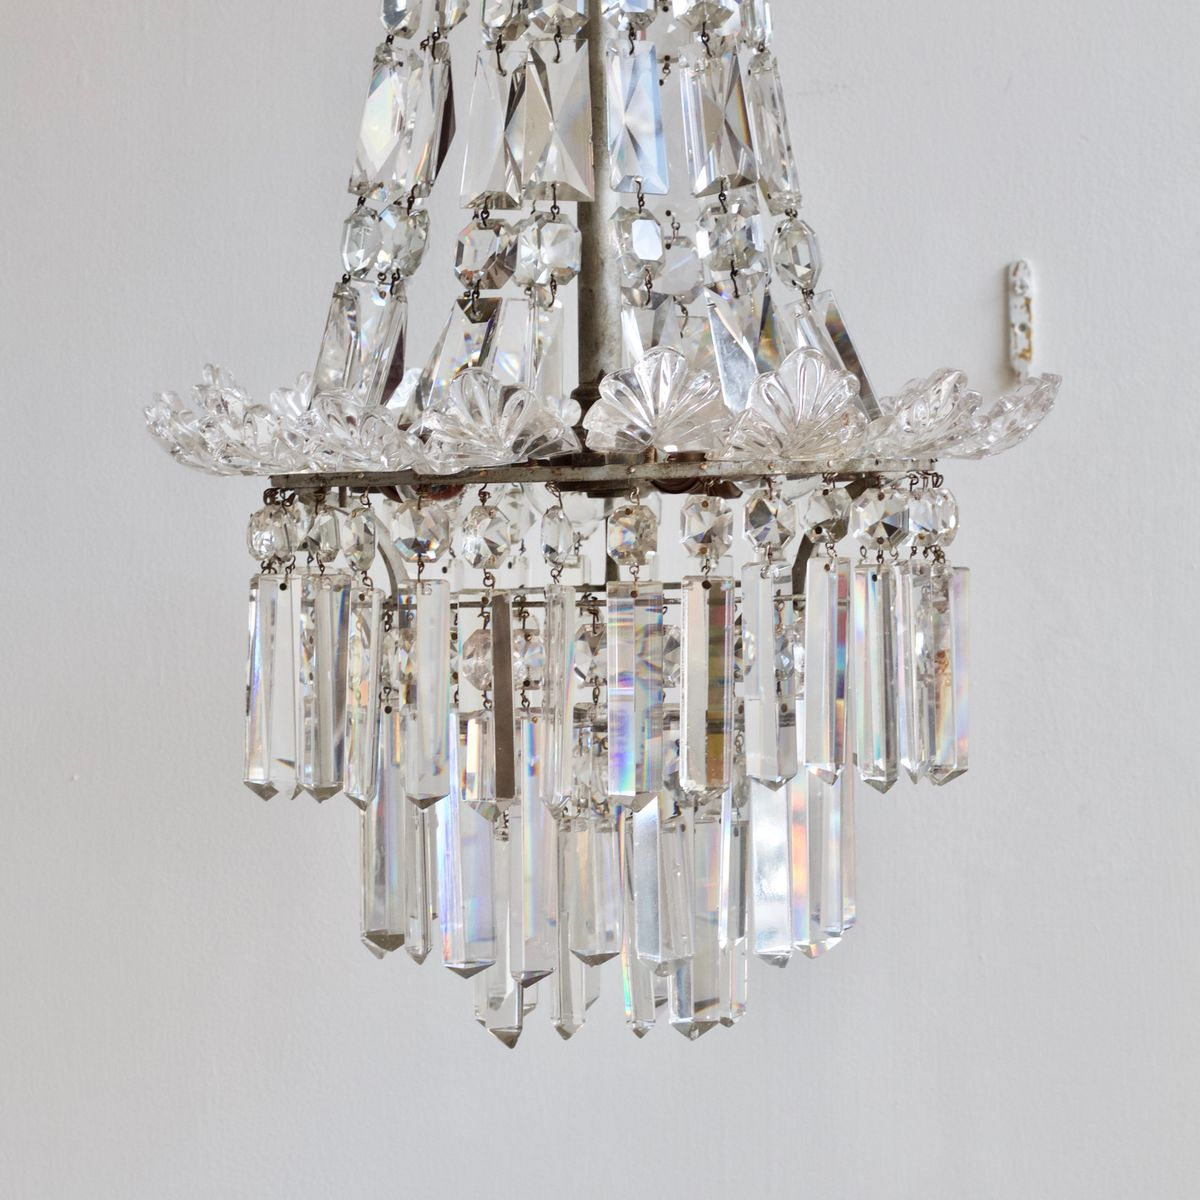 Crystal Chandelier Sale: English Crystal Chandelier, 1920s For Sale At Pamono